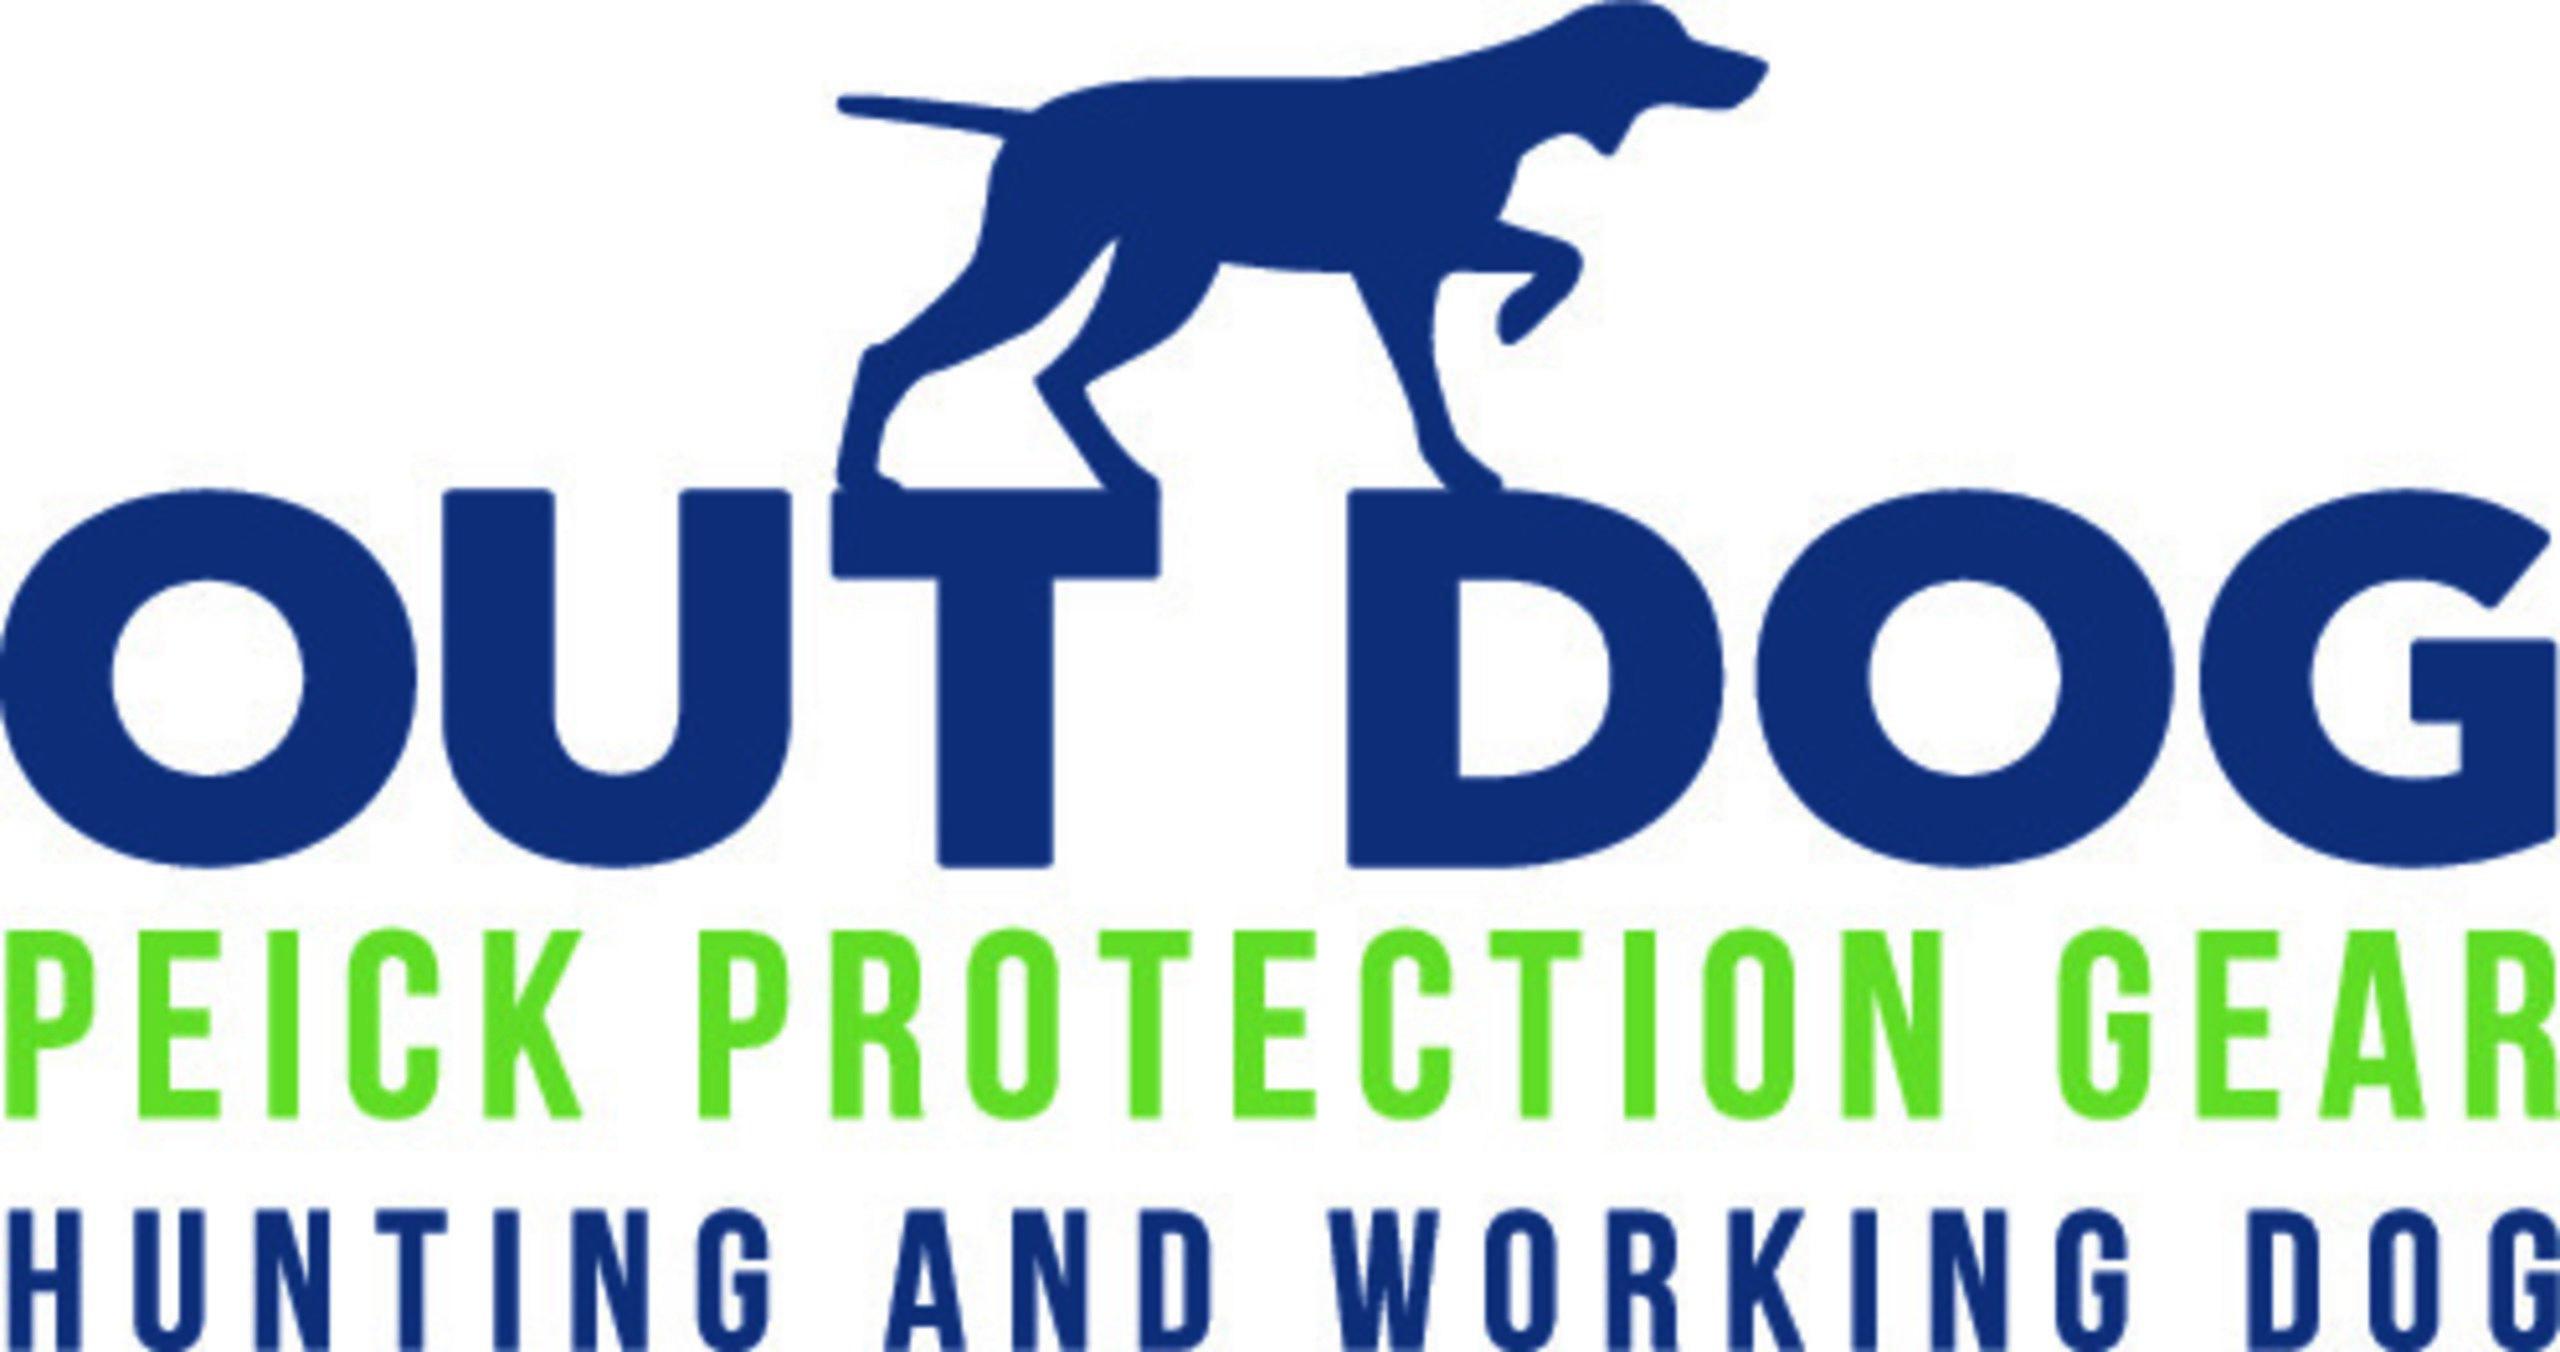 Out-Dog